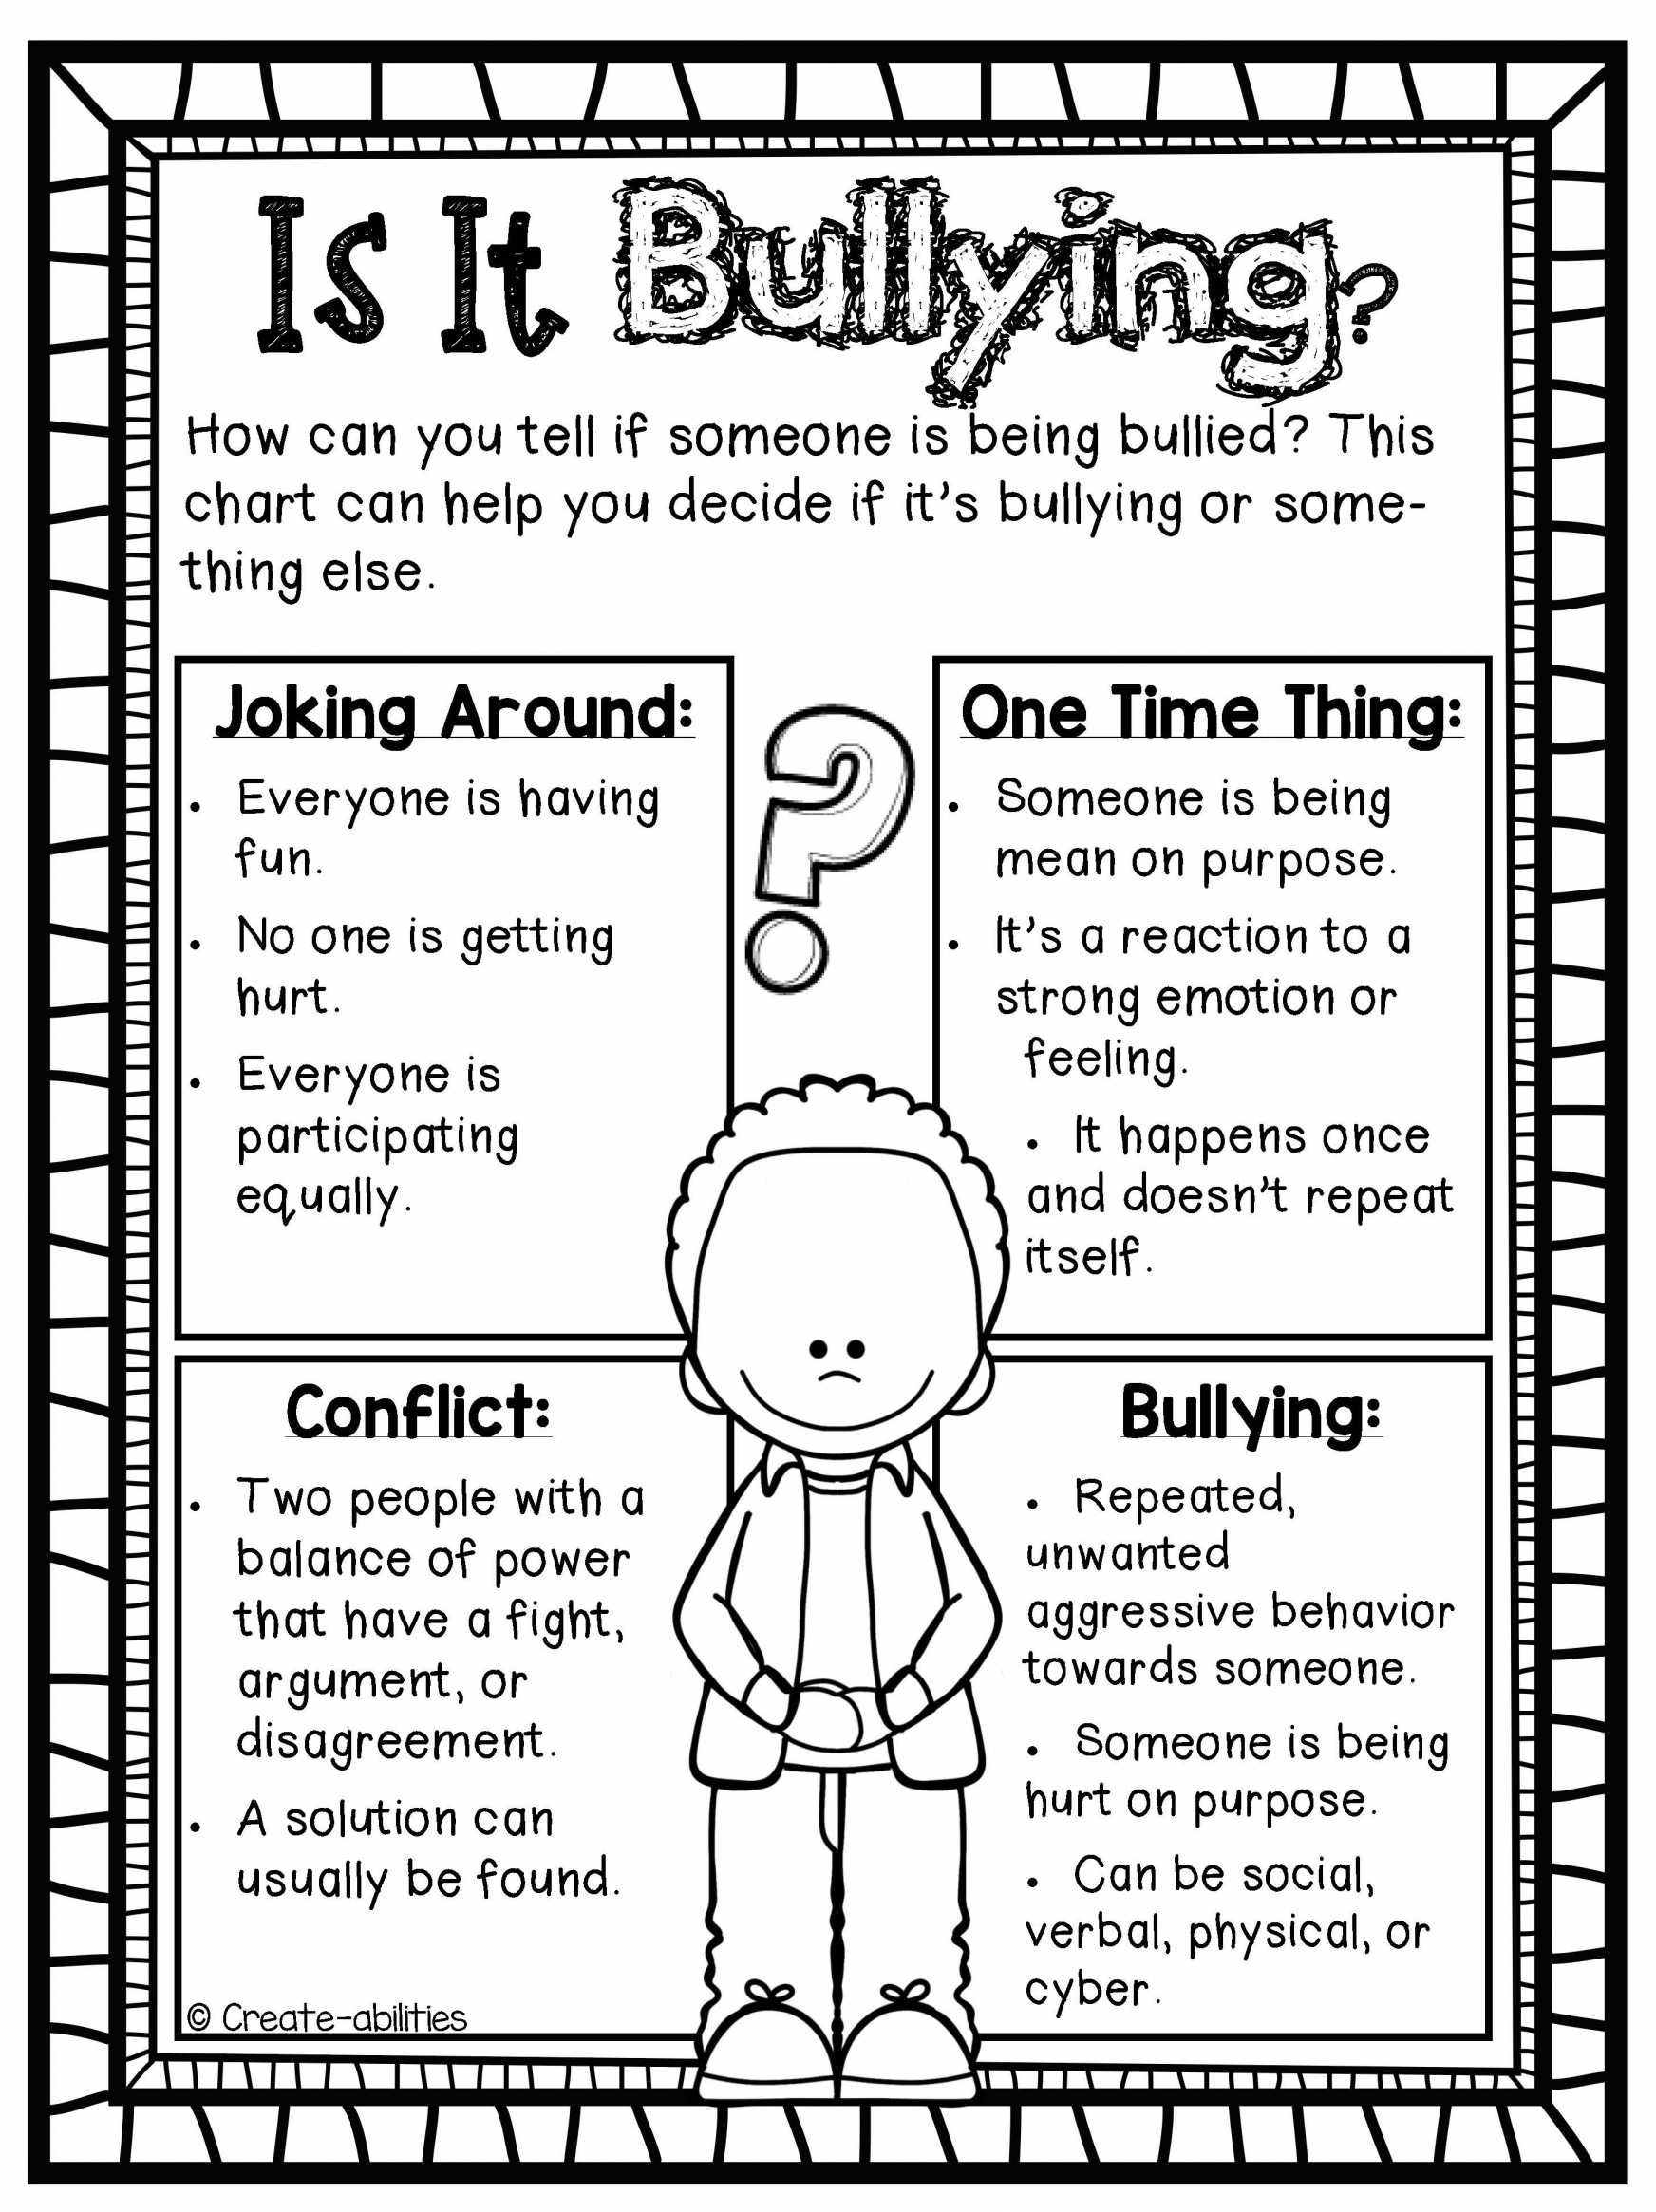 Kindergarten Worksheet Template Anti Bullying Worksheets For Kids With No Bullying Lessons Bullying Activities Bullying Posters [ 2330 x 1744 Pixel ]